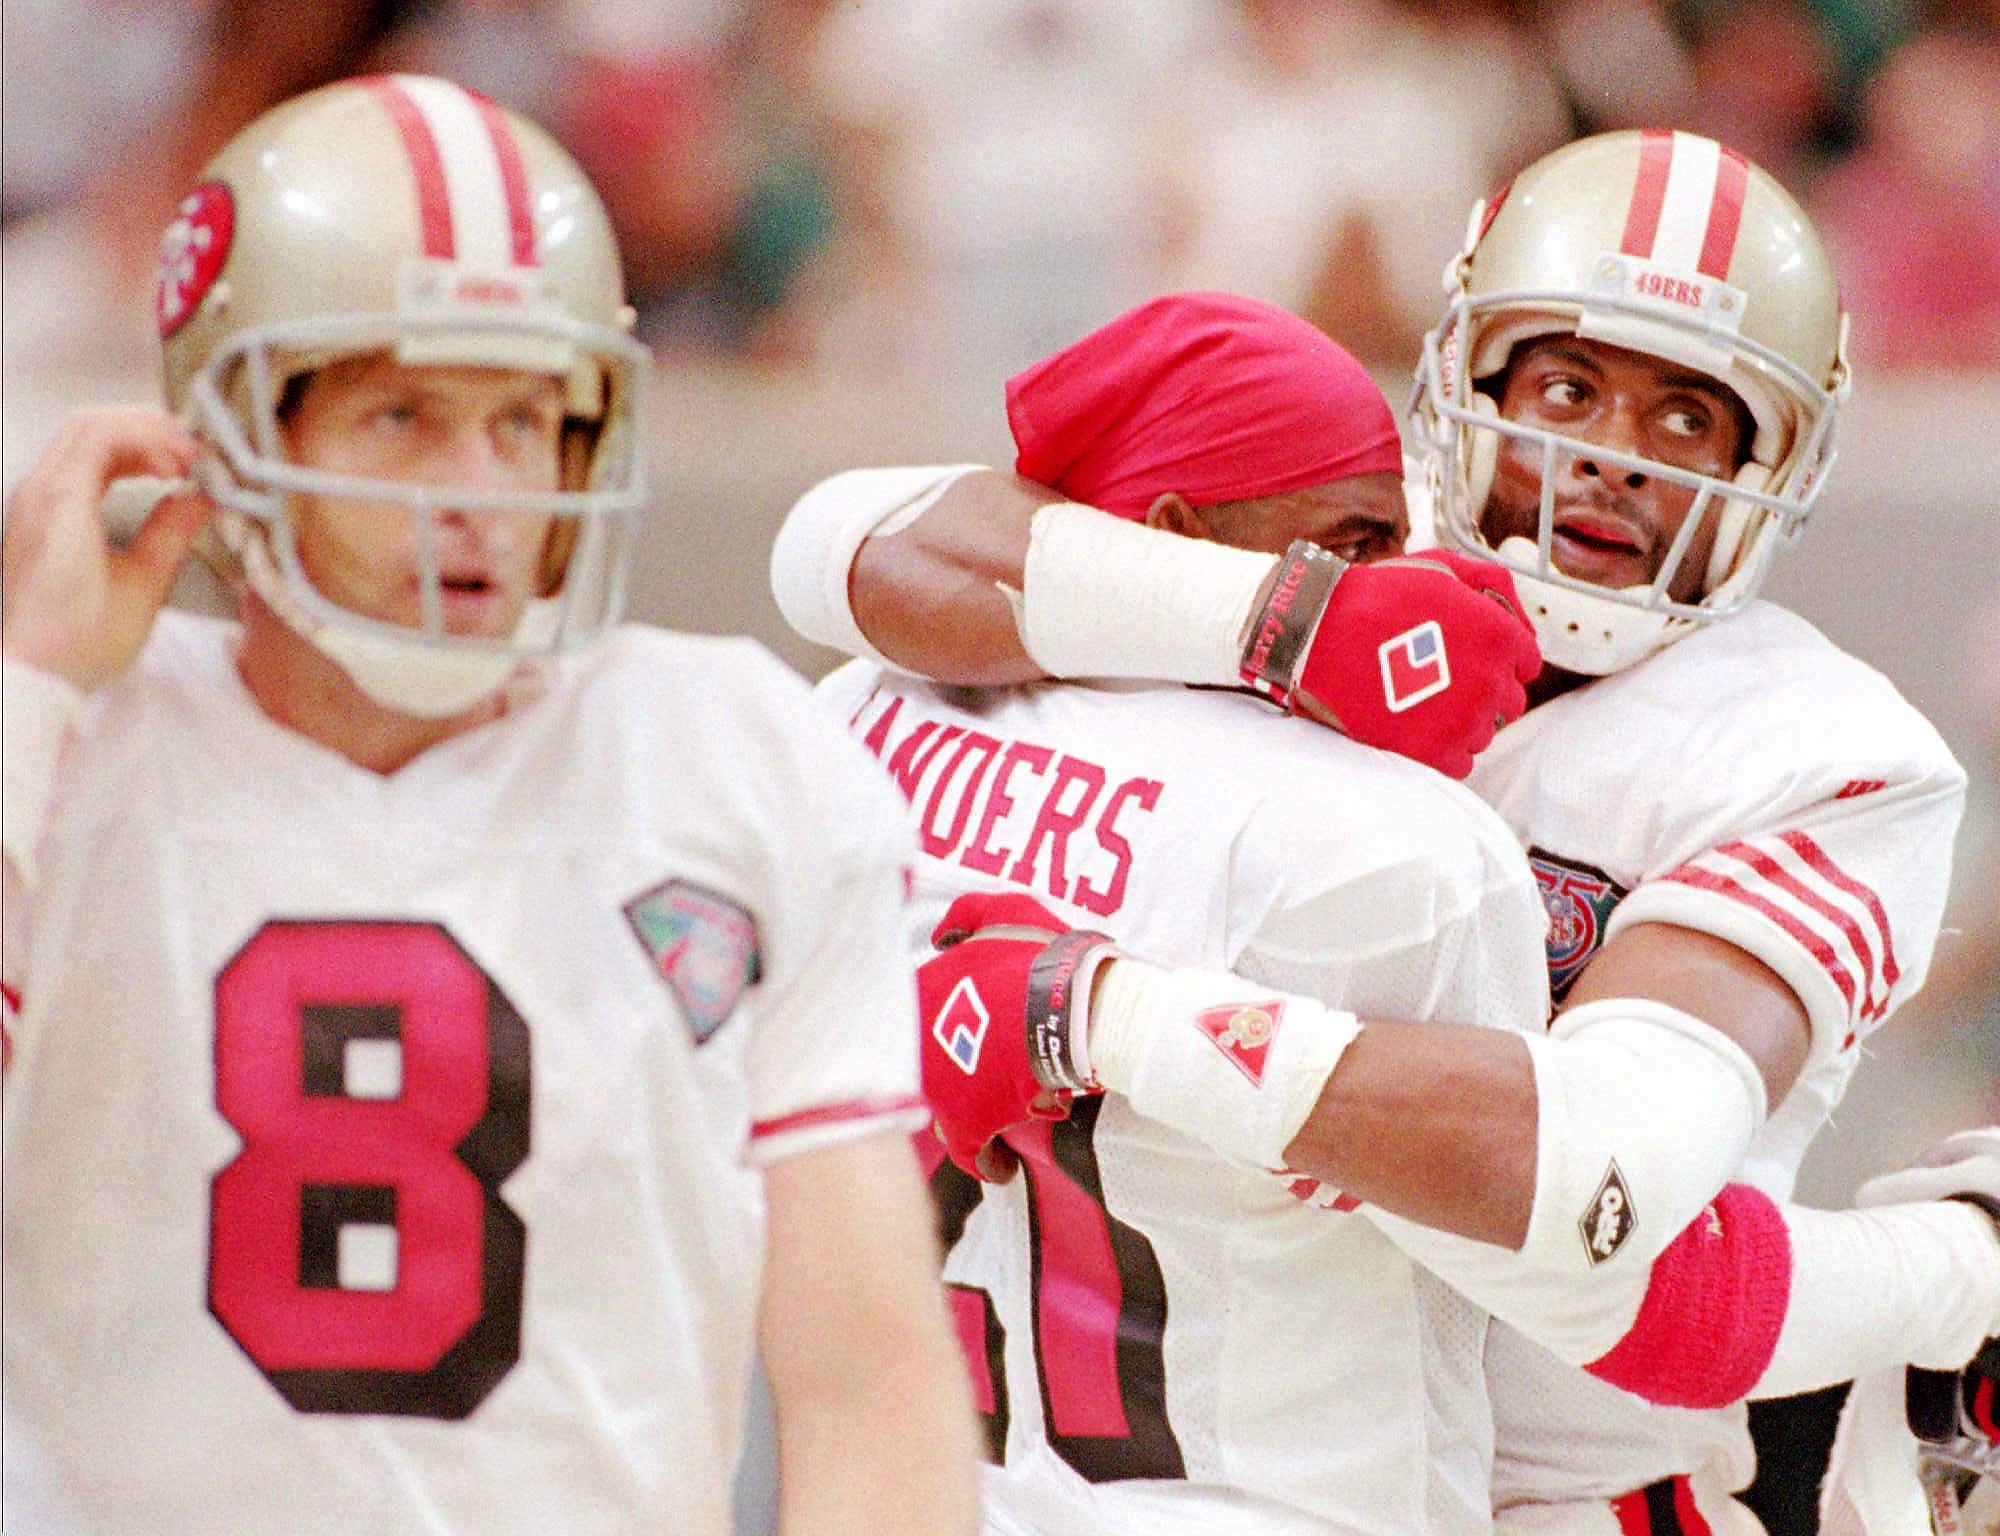 official photos 91607 c88f1 Jerry Rice parties like it's 1994 as 49ers unveil throwback ...